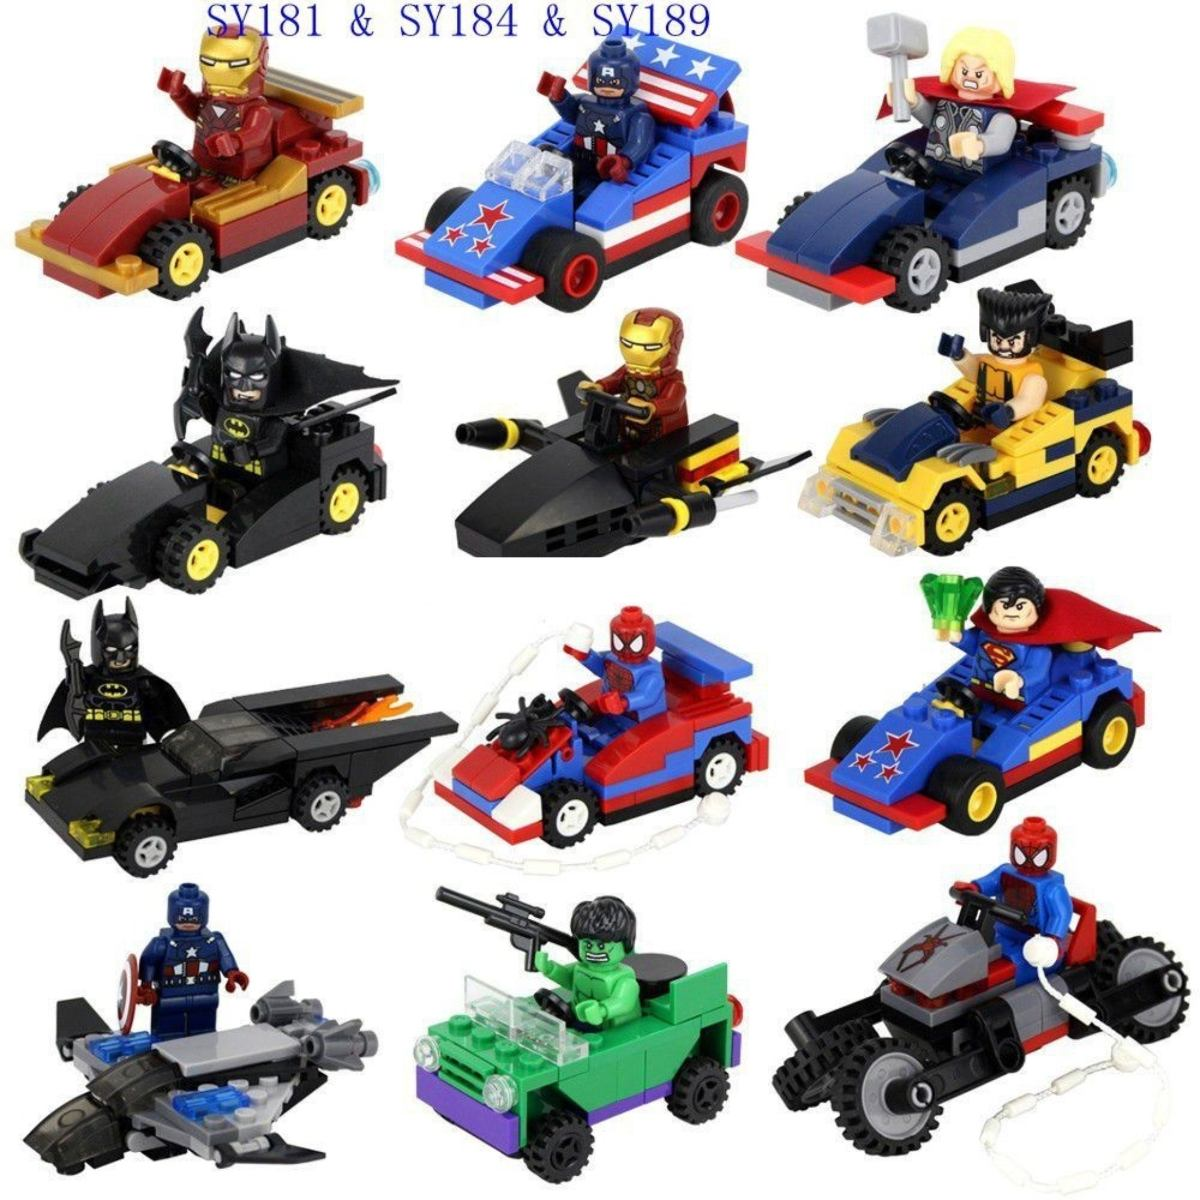 figuras compatibles con lego de superheroes y vehiculos en mercado libre. Black Bedroom Furniture Sets. Home Design Ideas